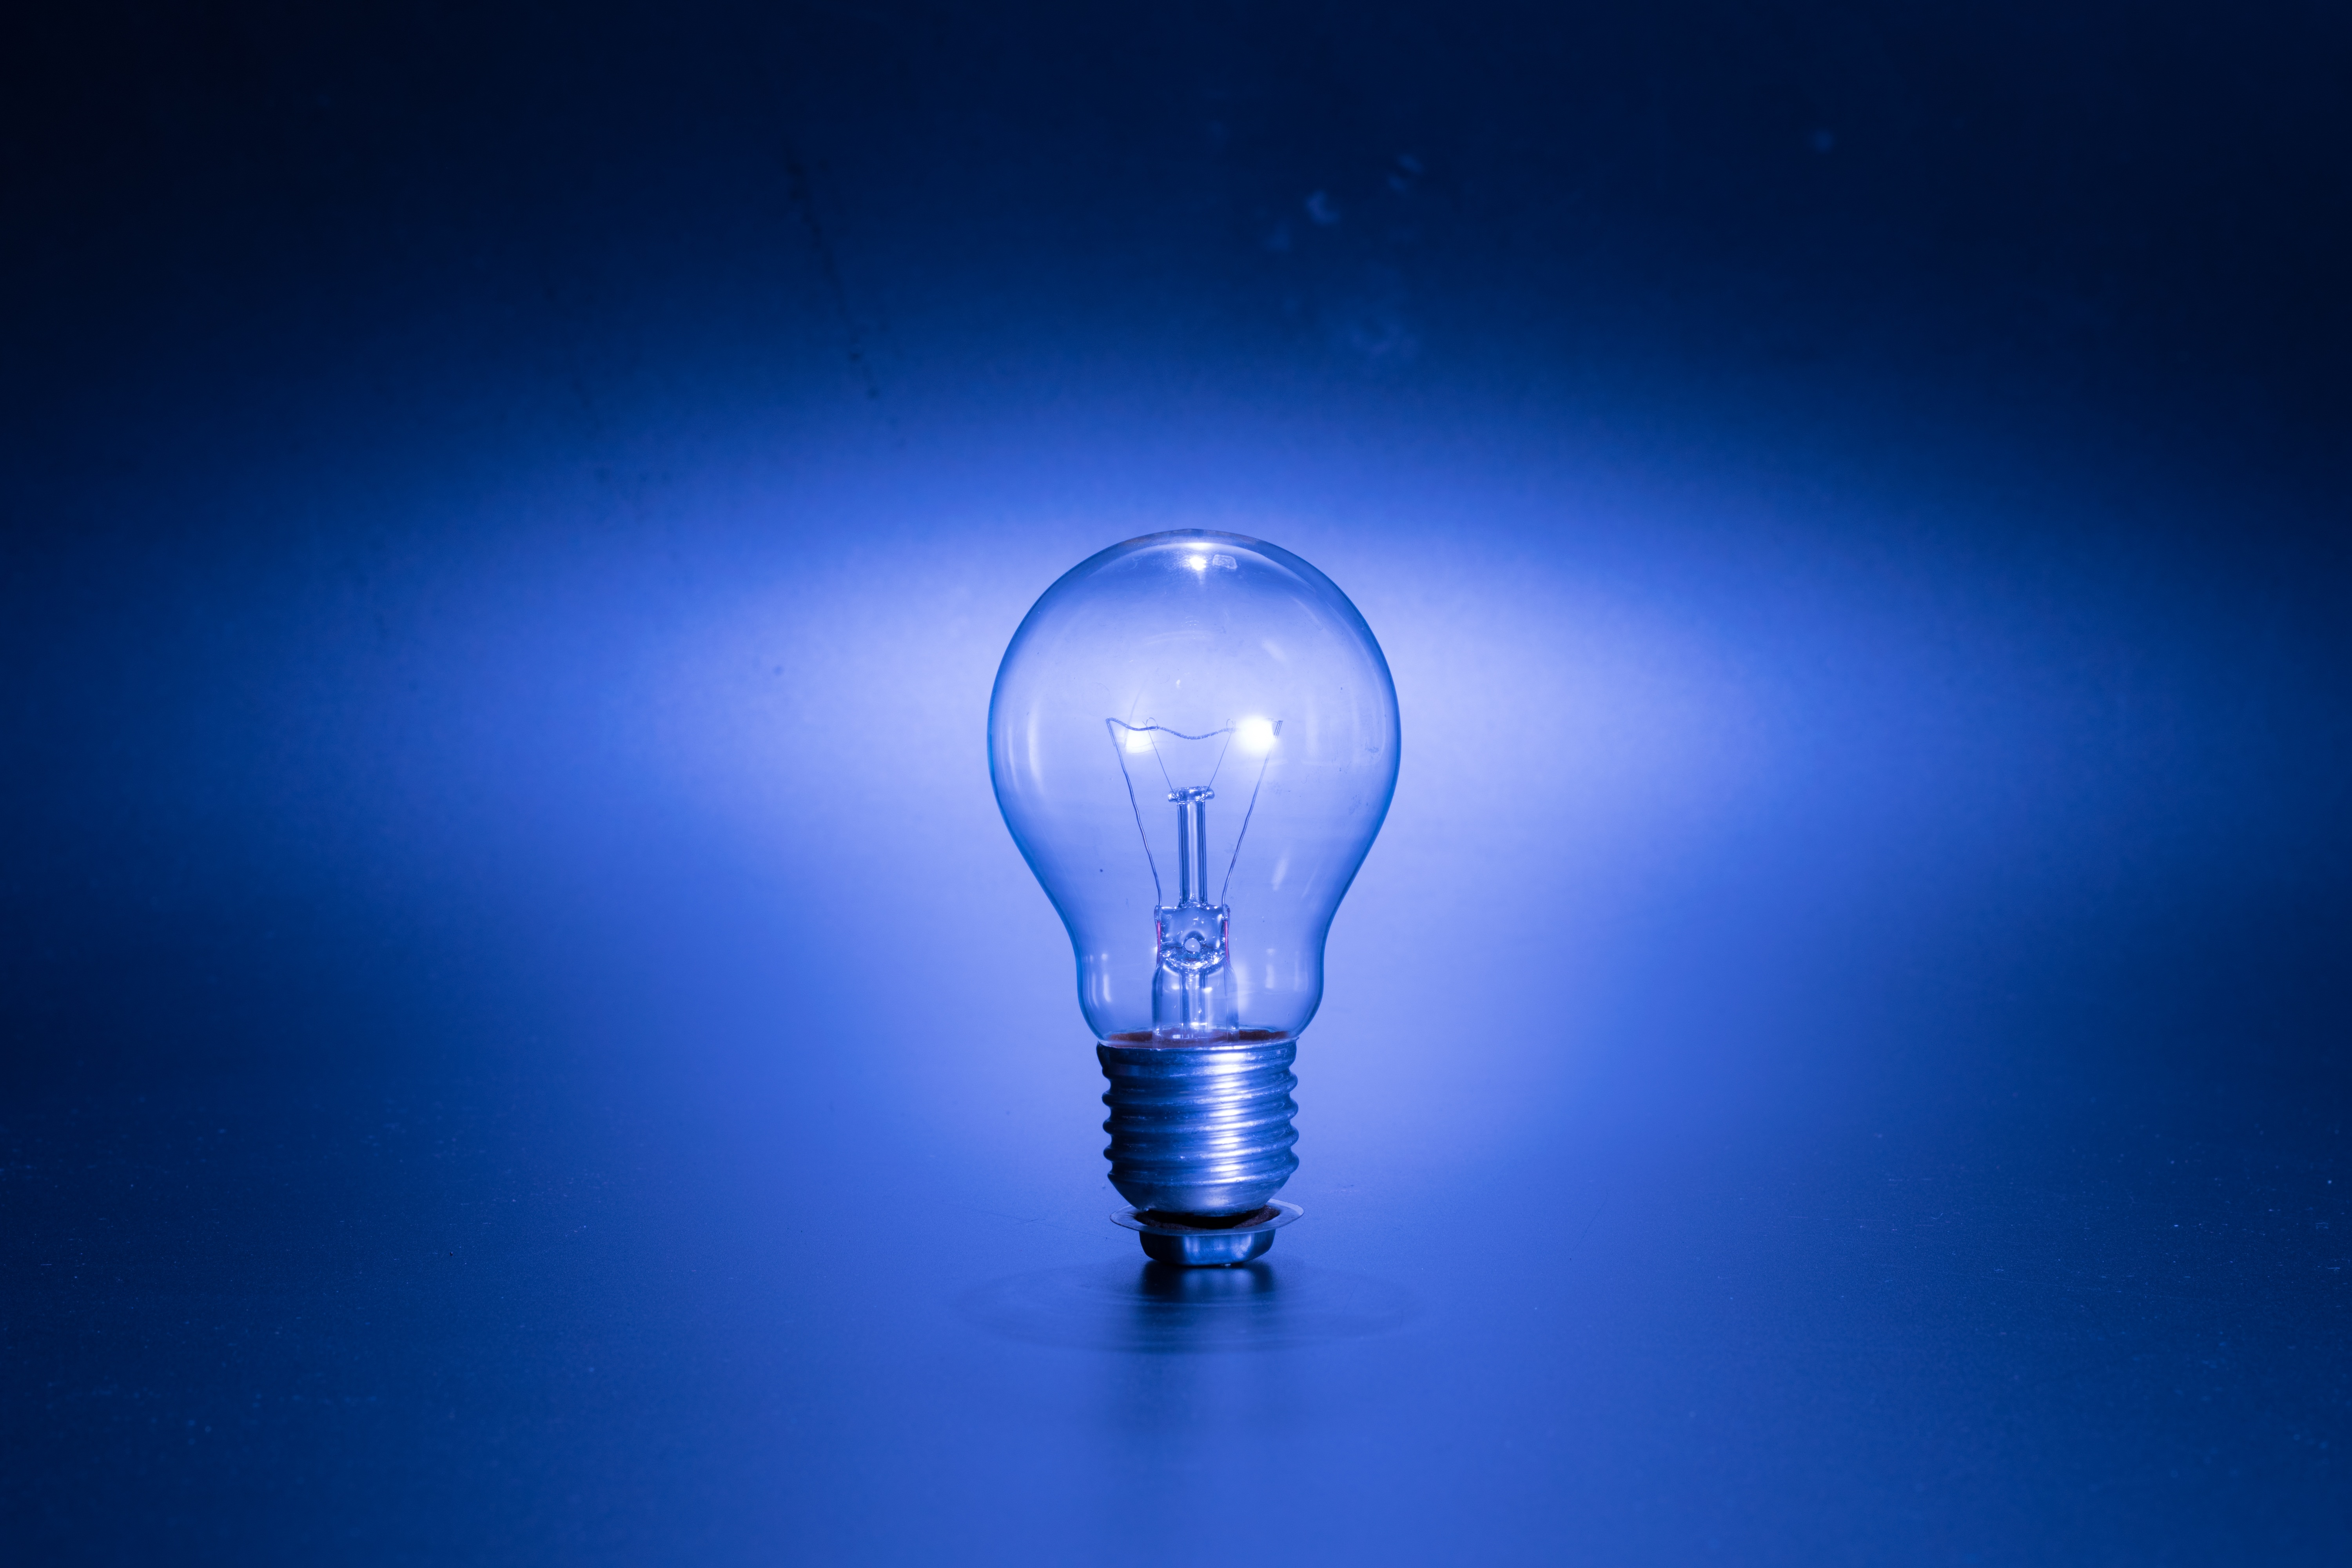 photo of lightbulb - lighting upgrades are one of 50 energy saving upgrades for business owners